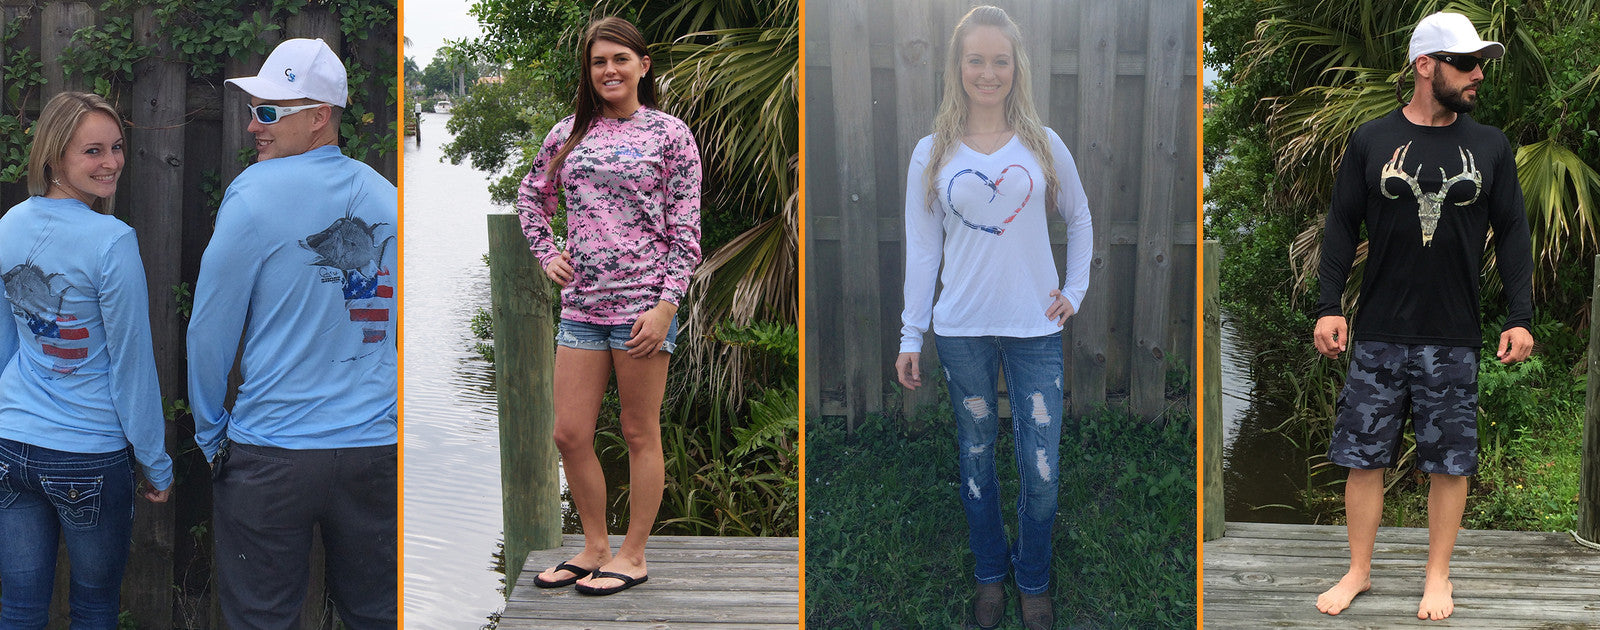 SPF Dry Fit Shirts and Dresses